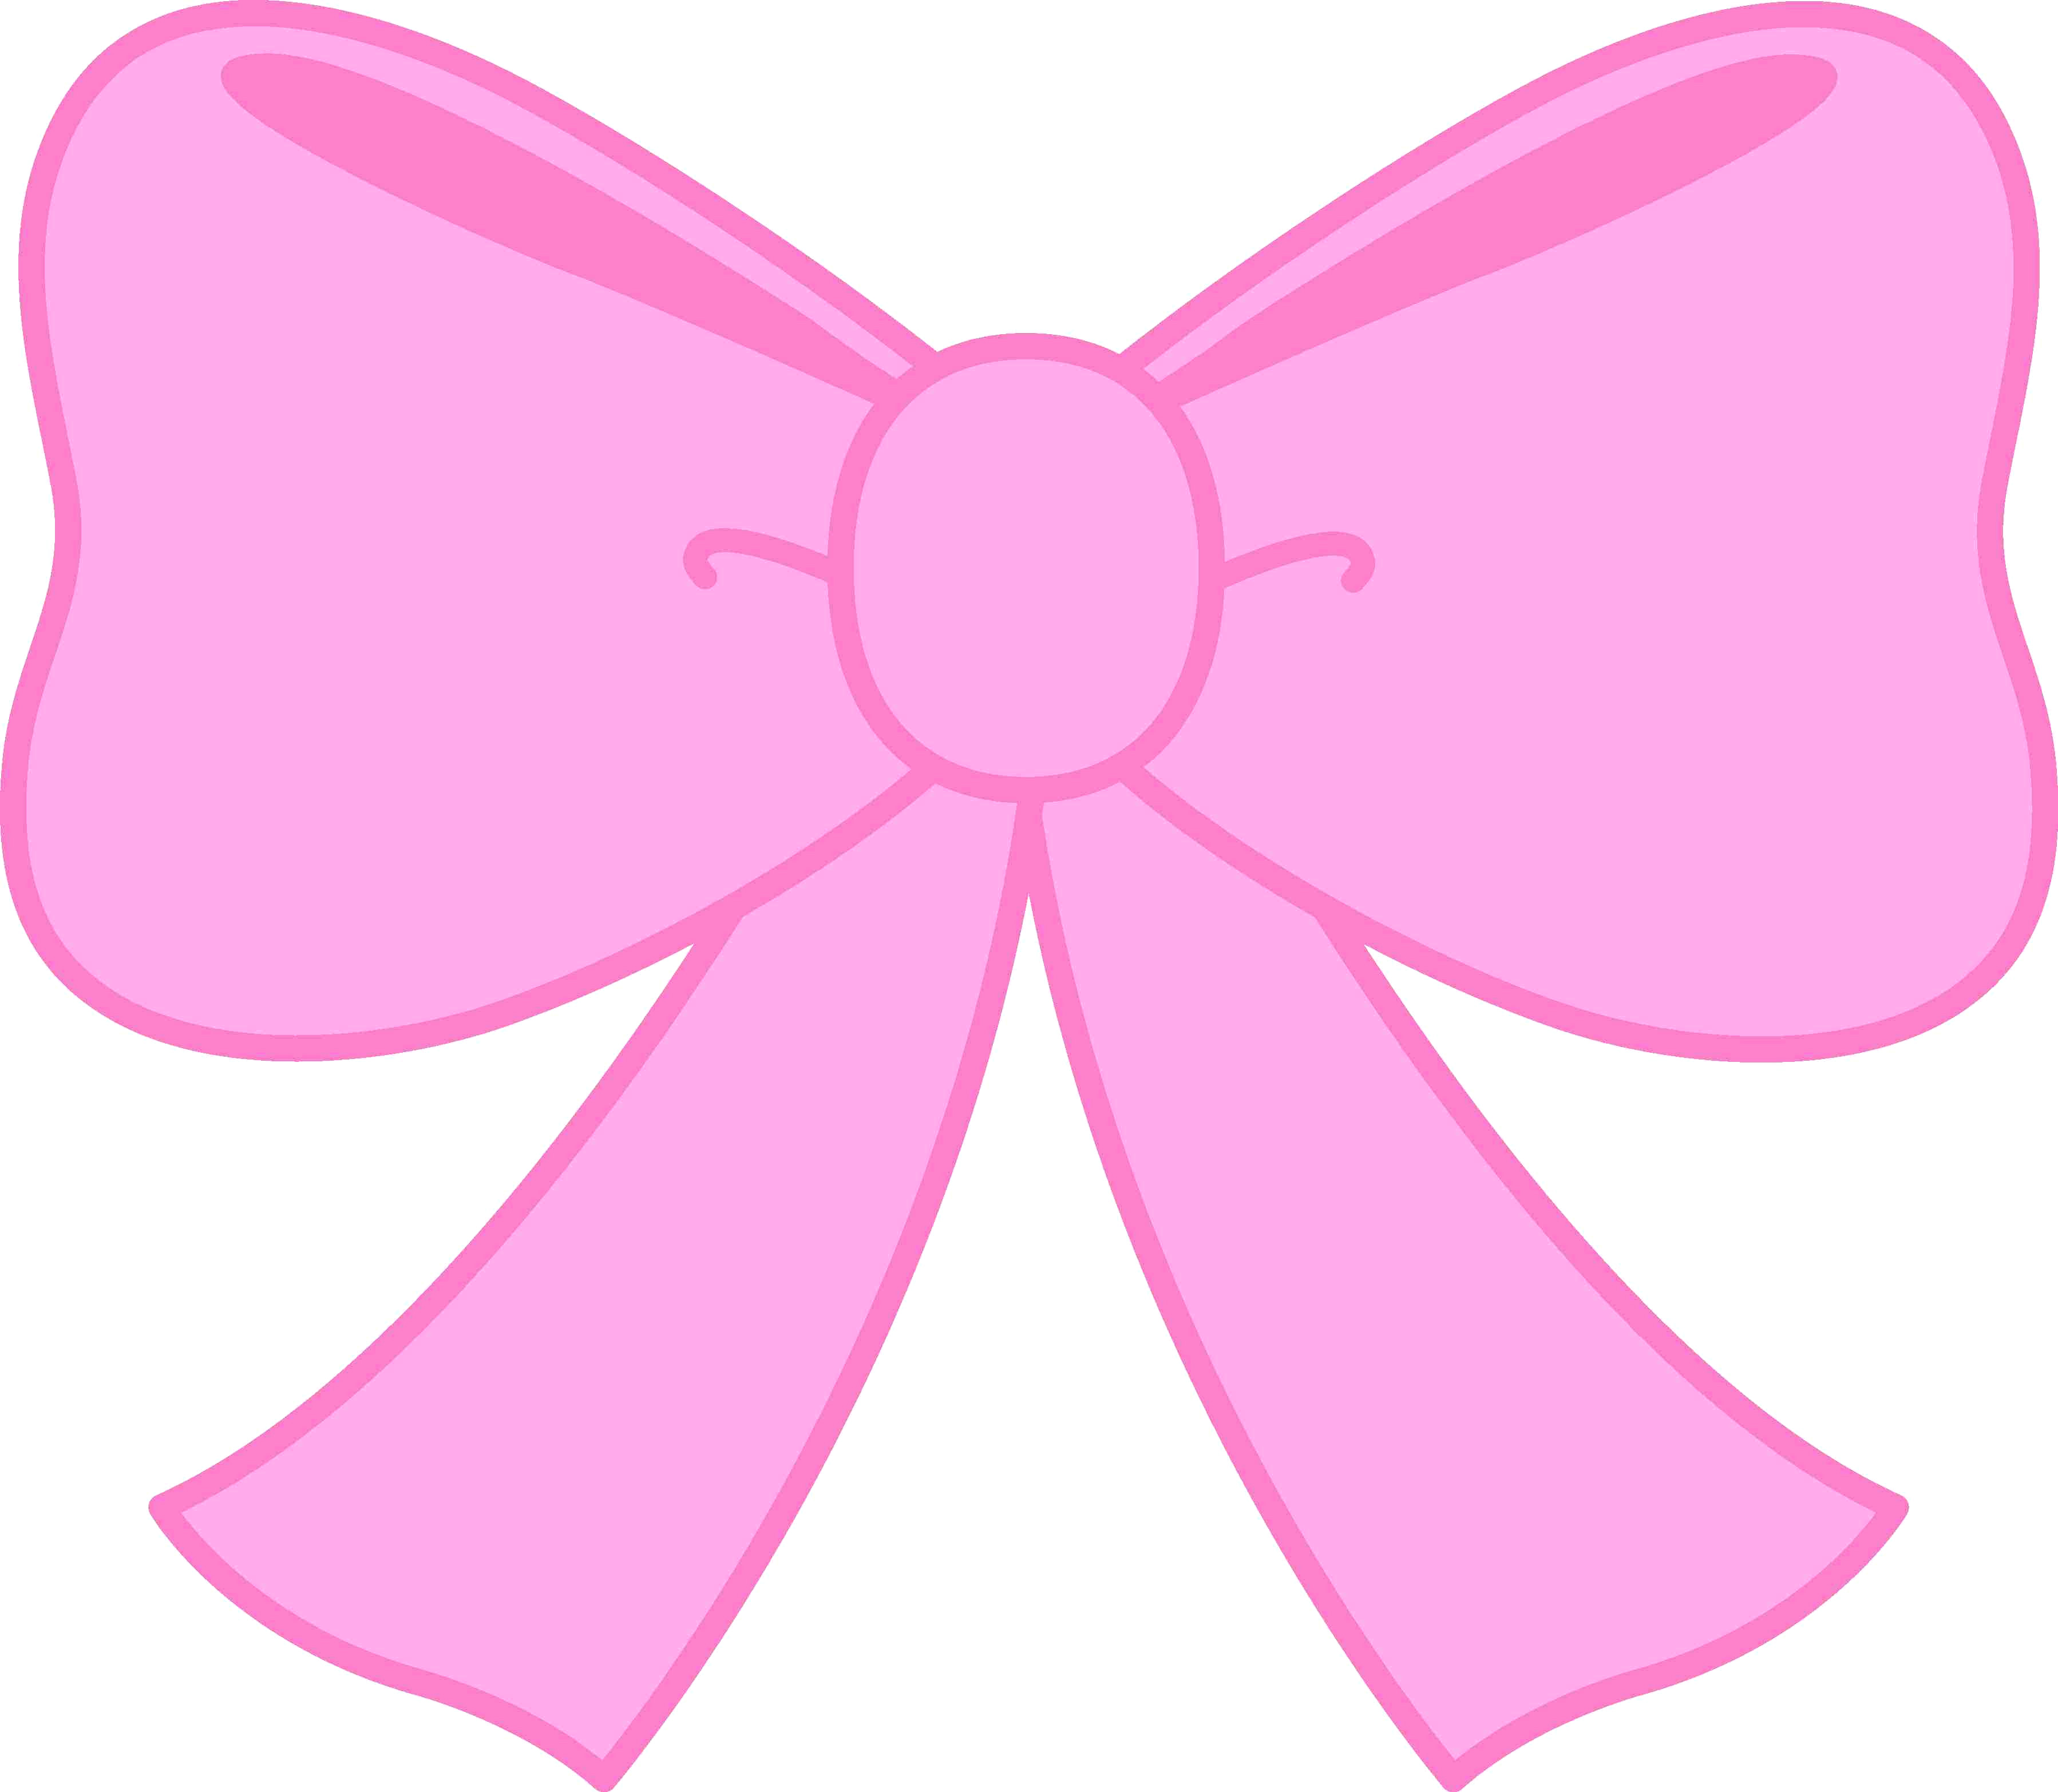 Bows clipart. Hair bow rescuedesk me